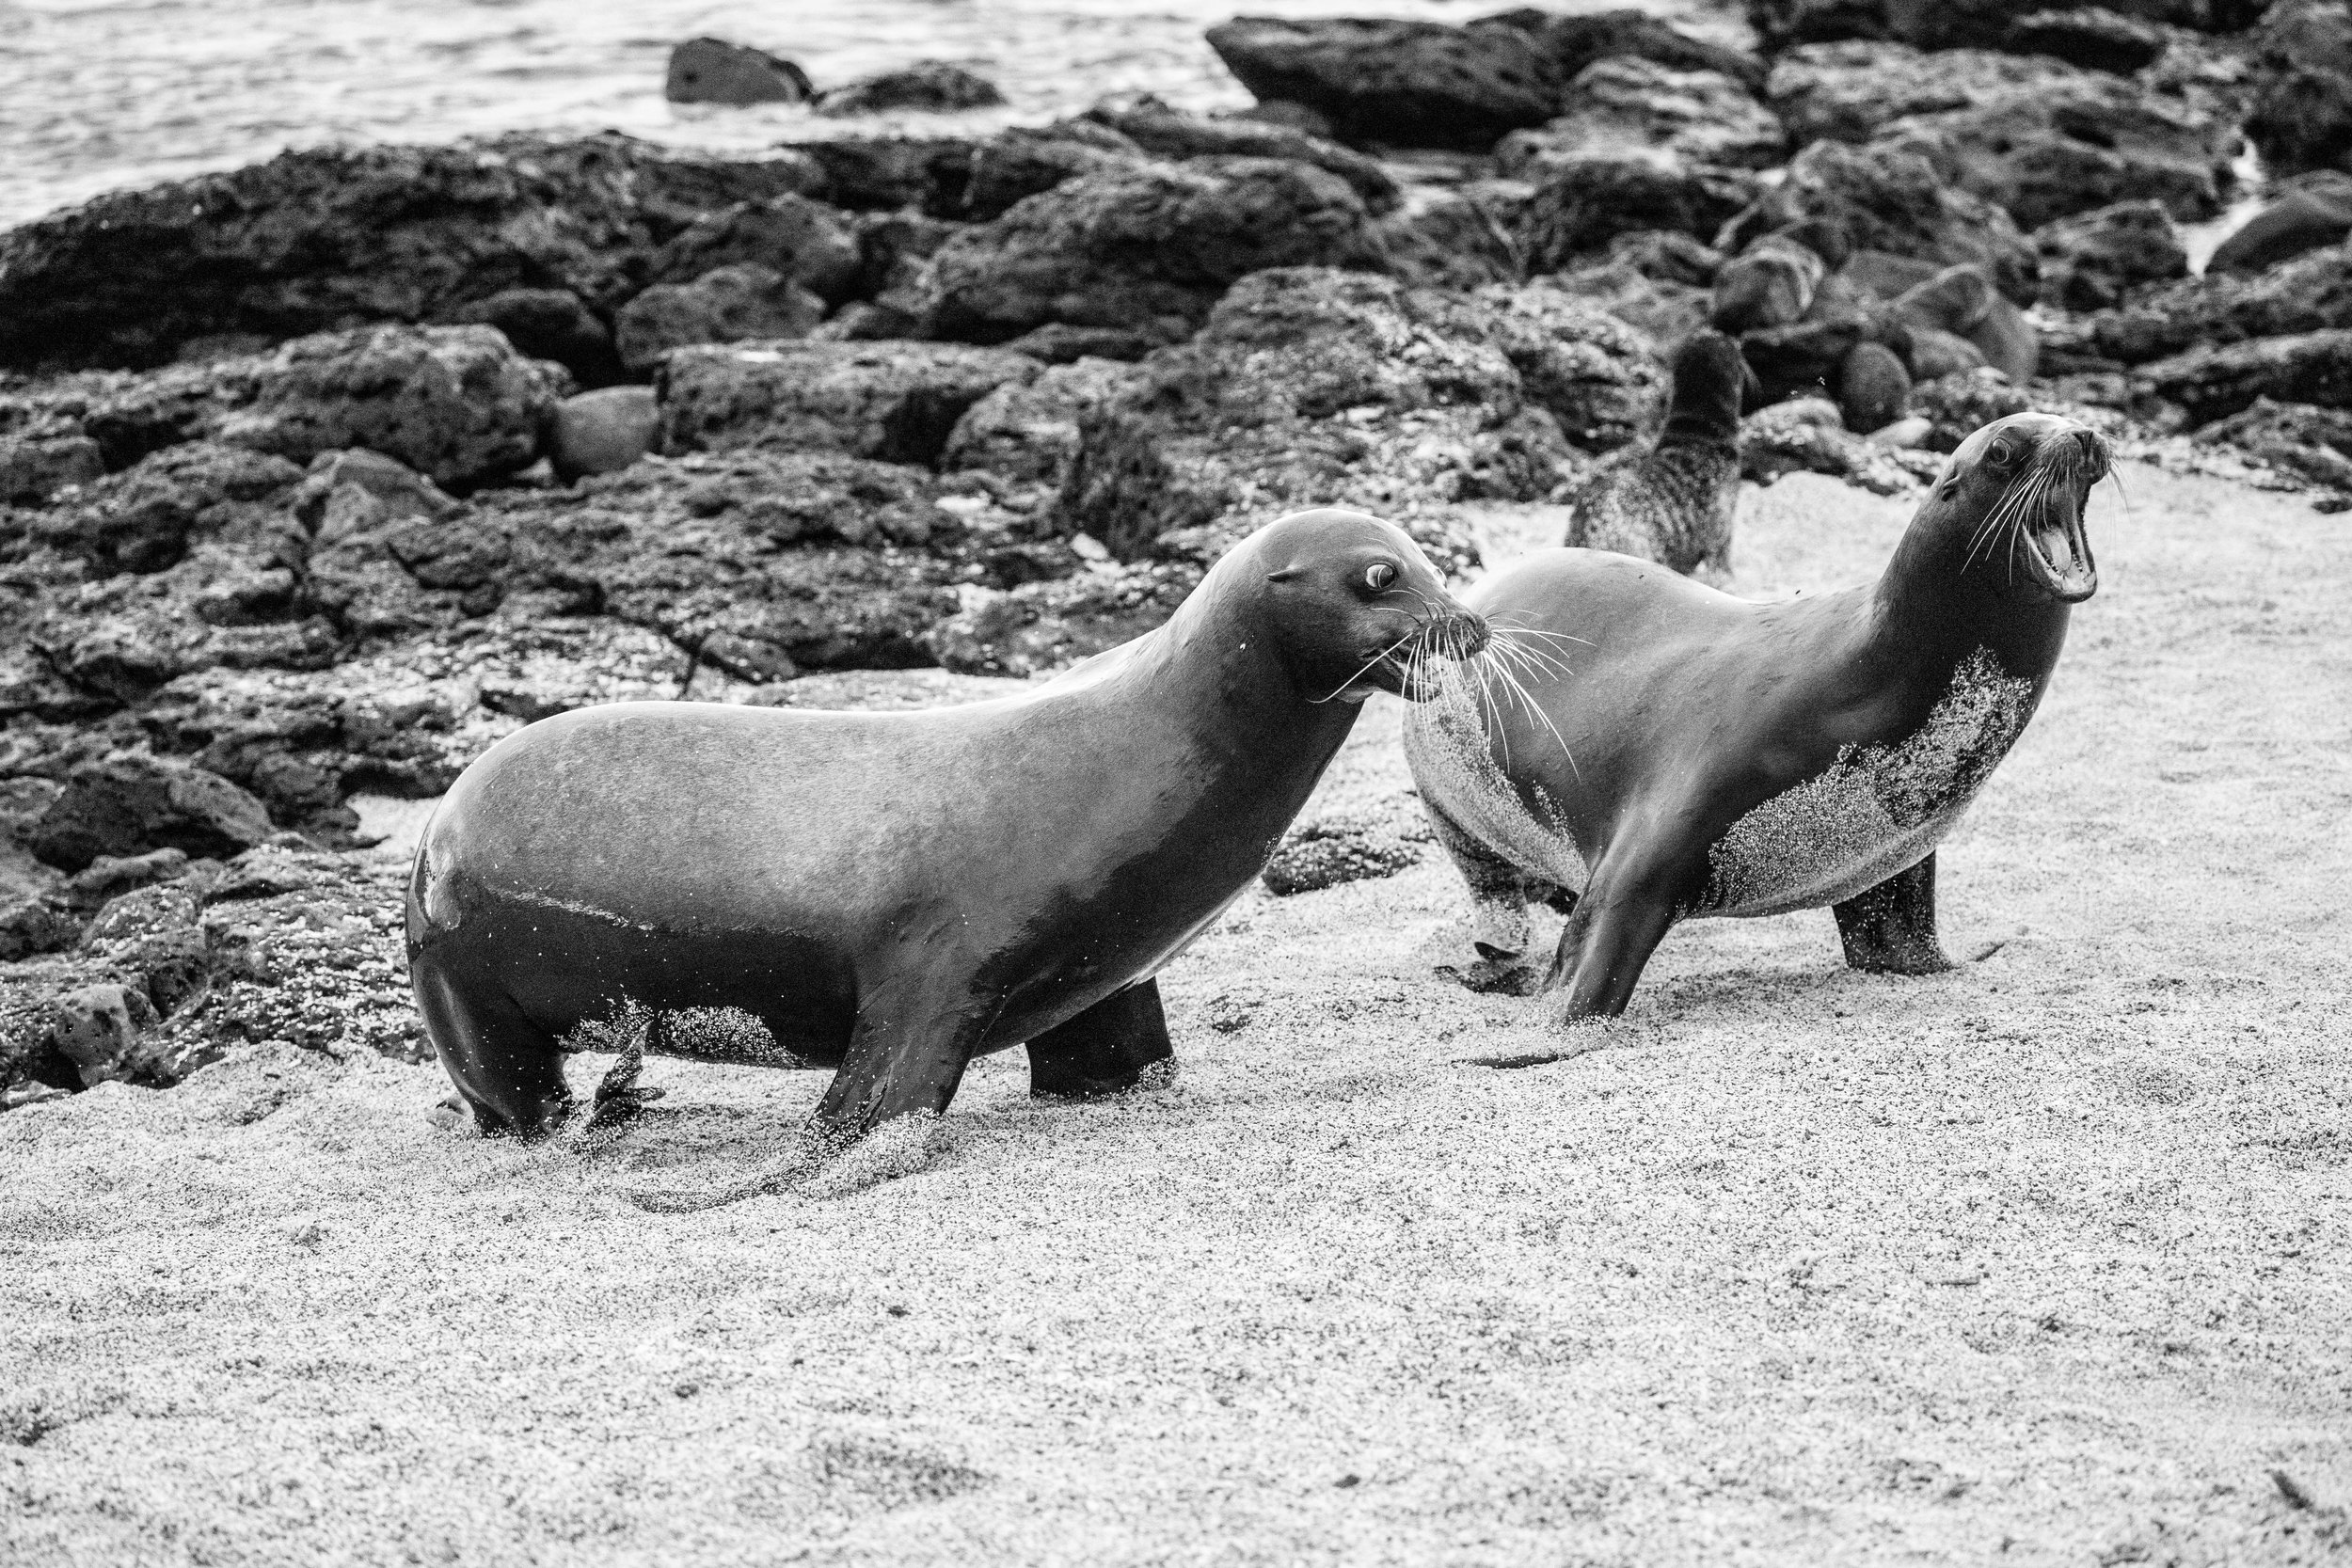 Galapagos_Males_Sea_Lions_Fight.jpg